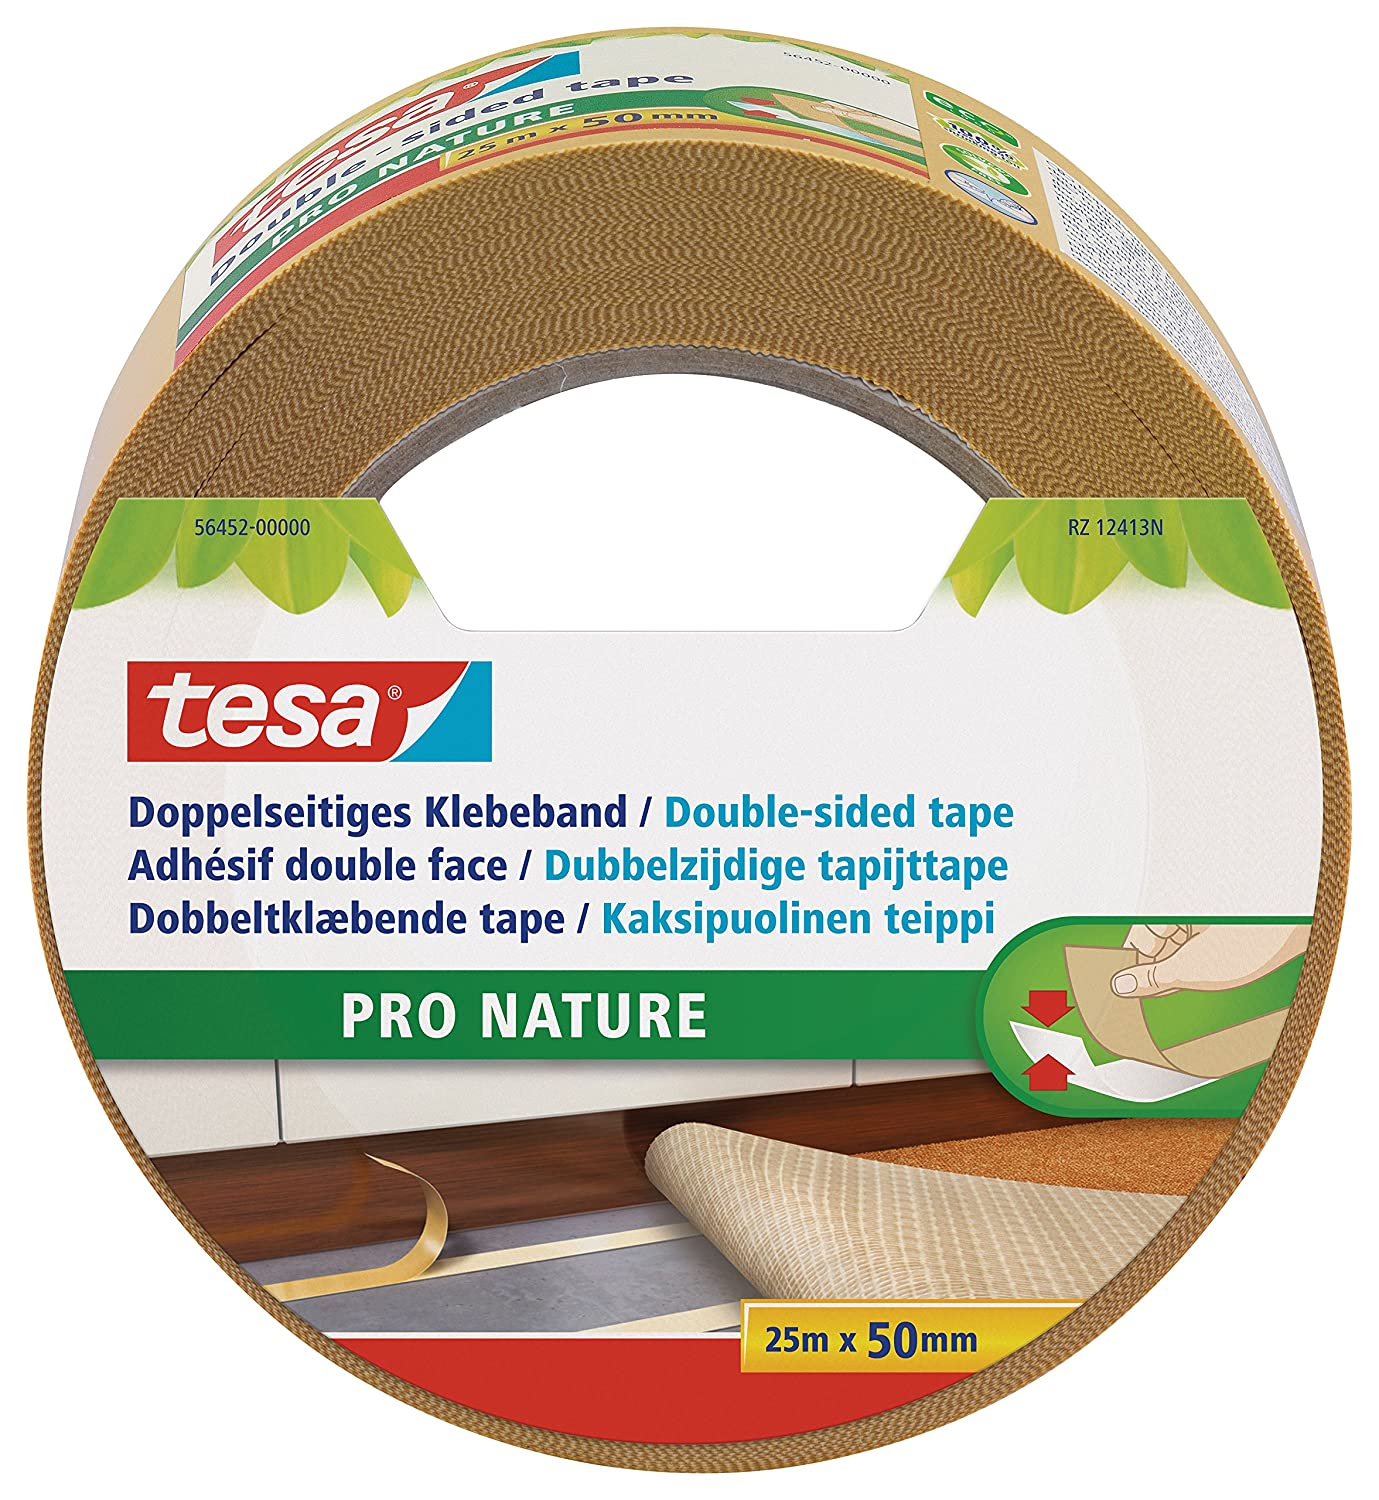 tesa Carpet Tape Double-Sided/Ecological / 10 M x 50 MM 56451-00000-00